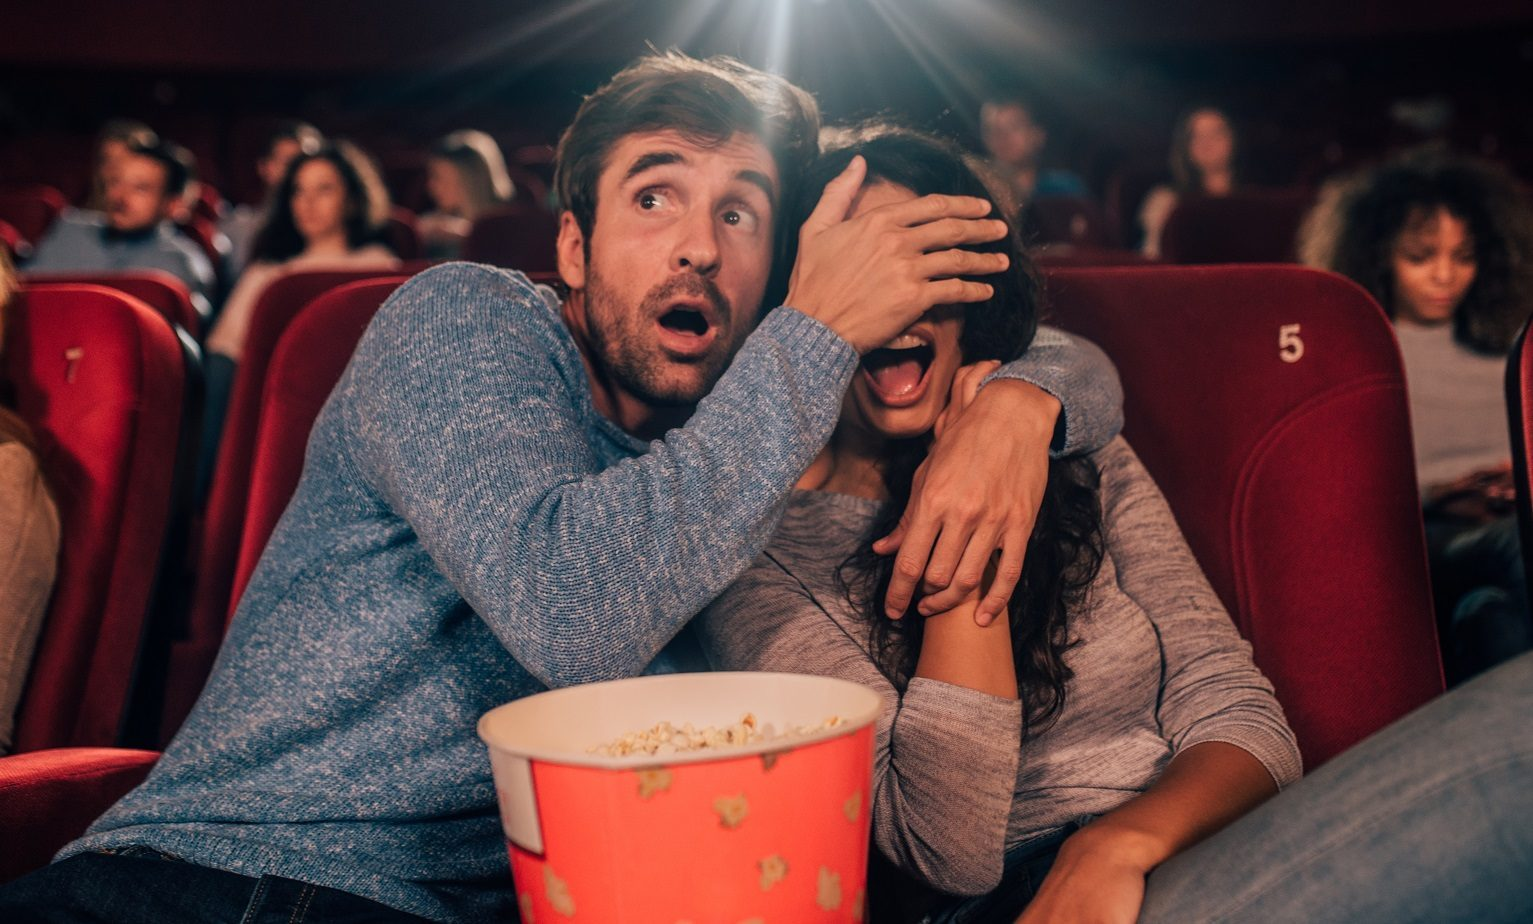 Scared couple watching horror movie at the cinema together